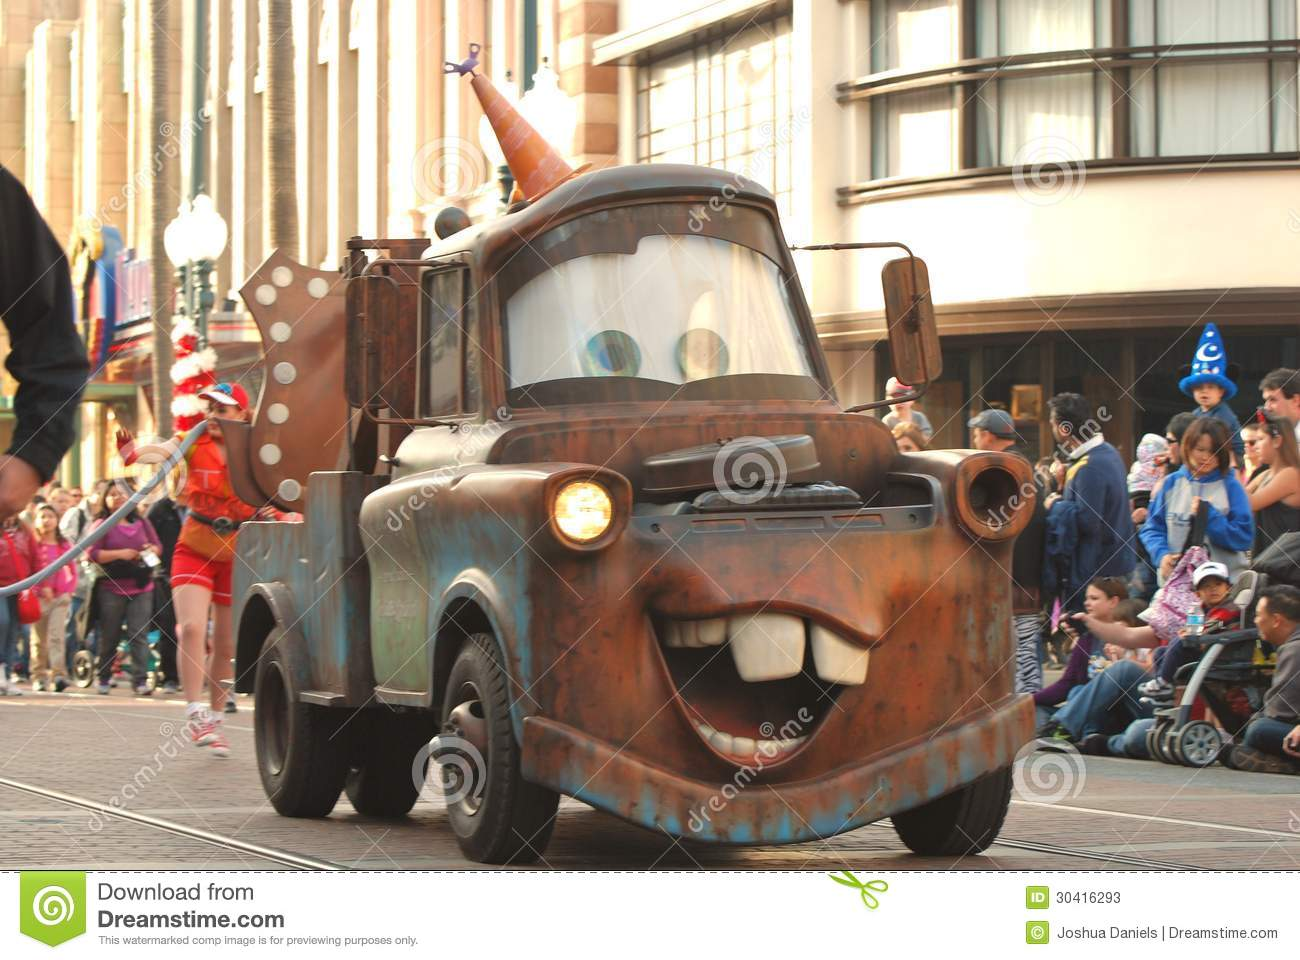 Car Wallpaper App Tow Mater From The Pixar Movie Cars In A Parade At